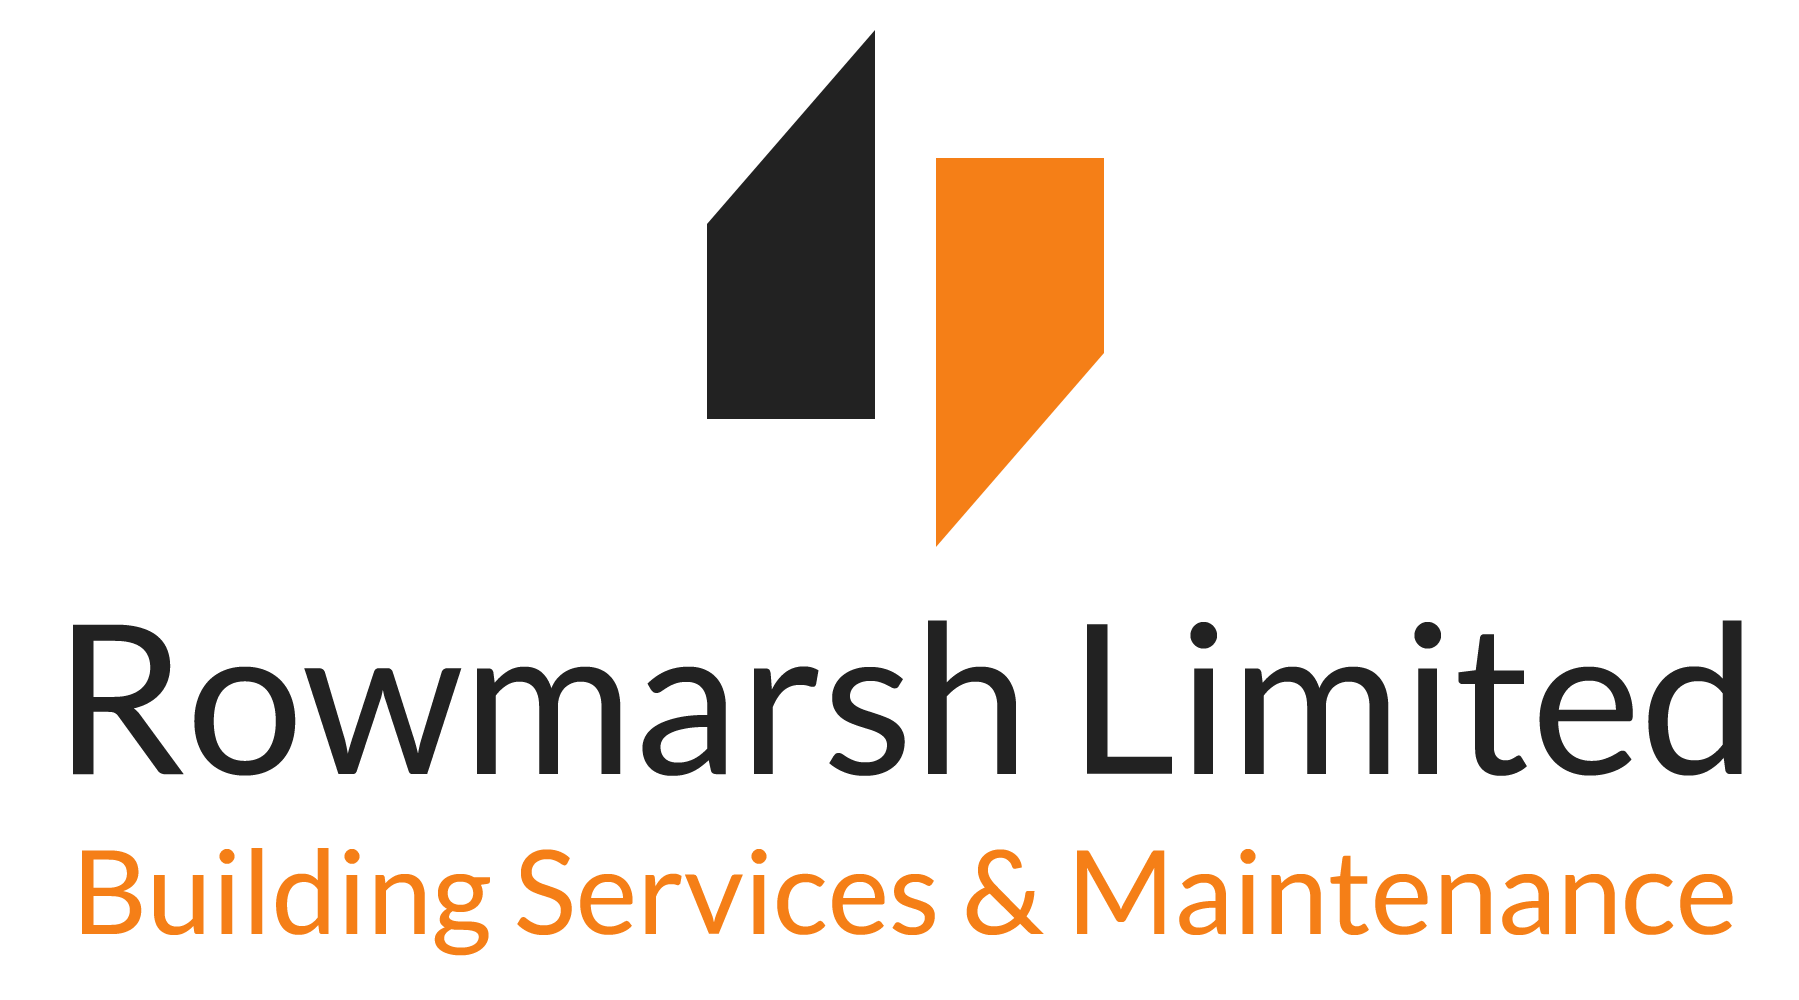 Rowmarsh Limited